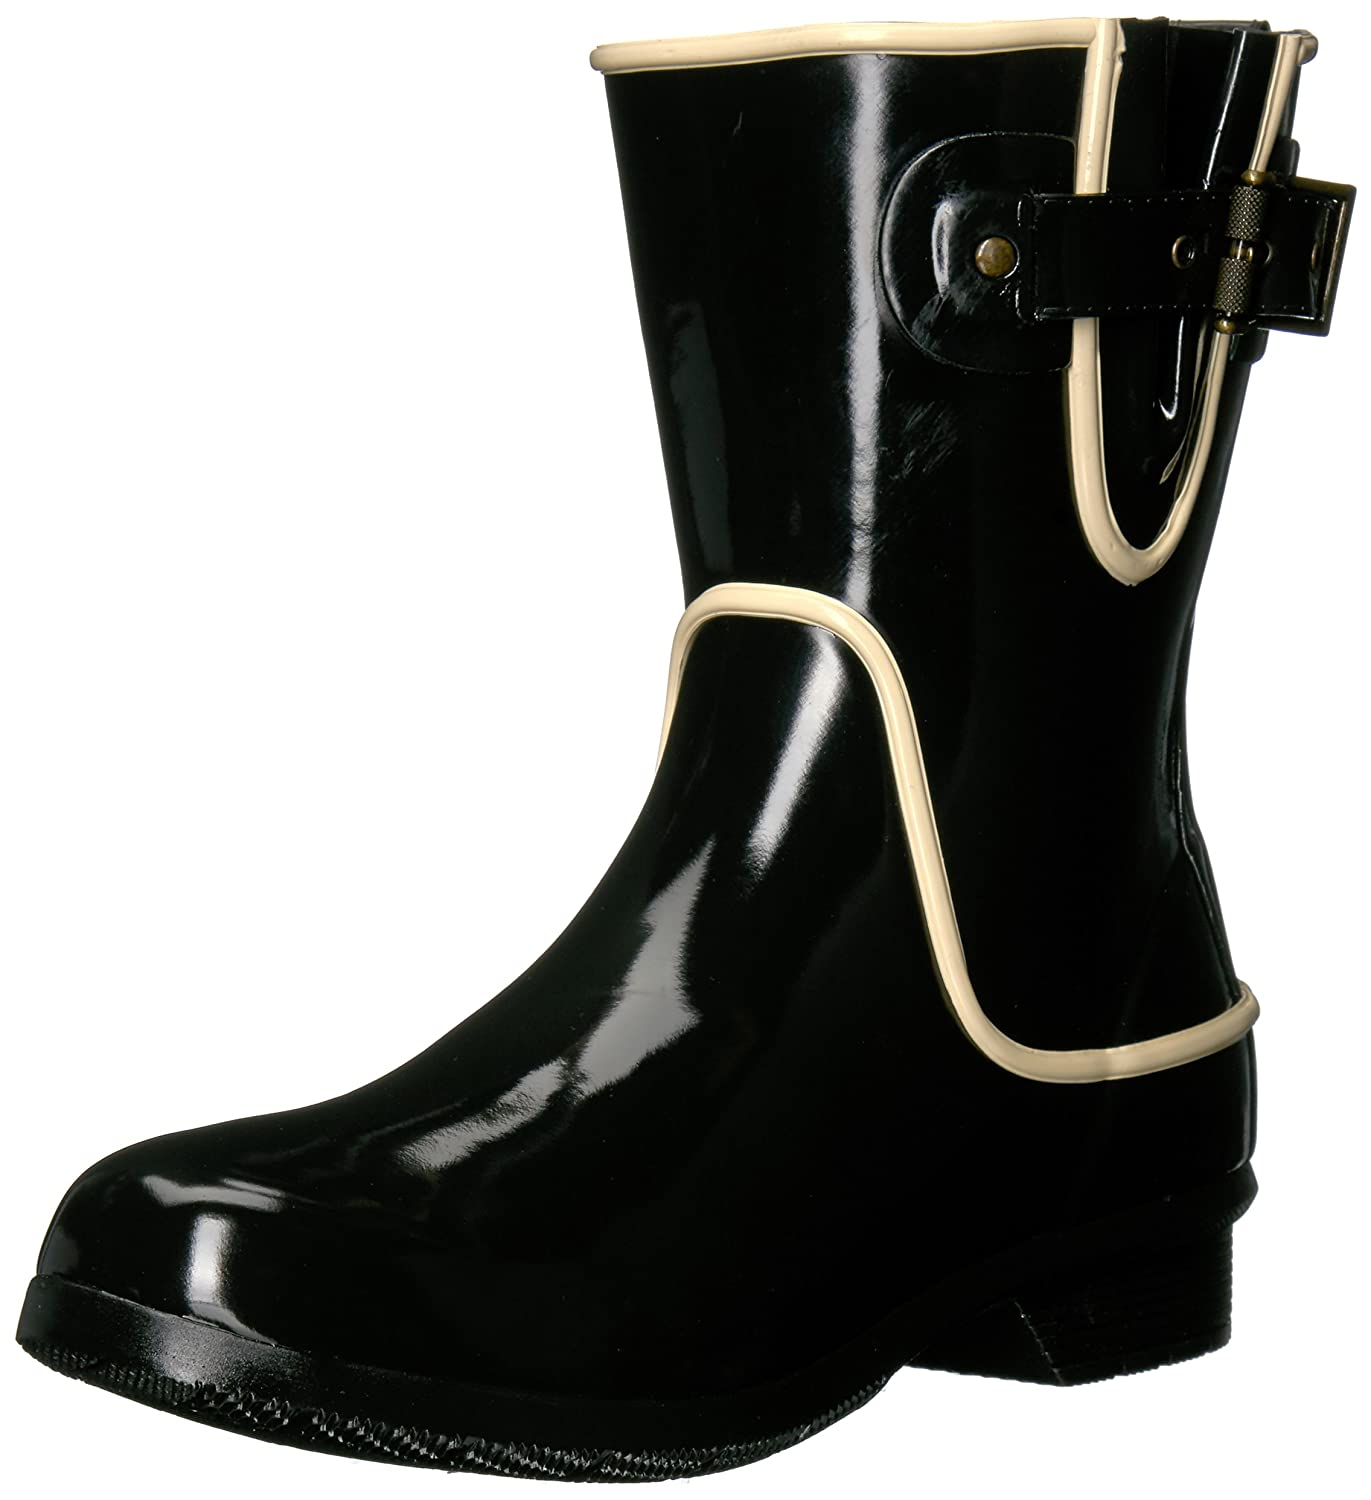 Chooka Women's Waterproof Mid-Height Printed Memory Foam Rain Boot B01LPBPYVM 7 B(M) US|Fine Line Black